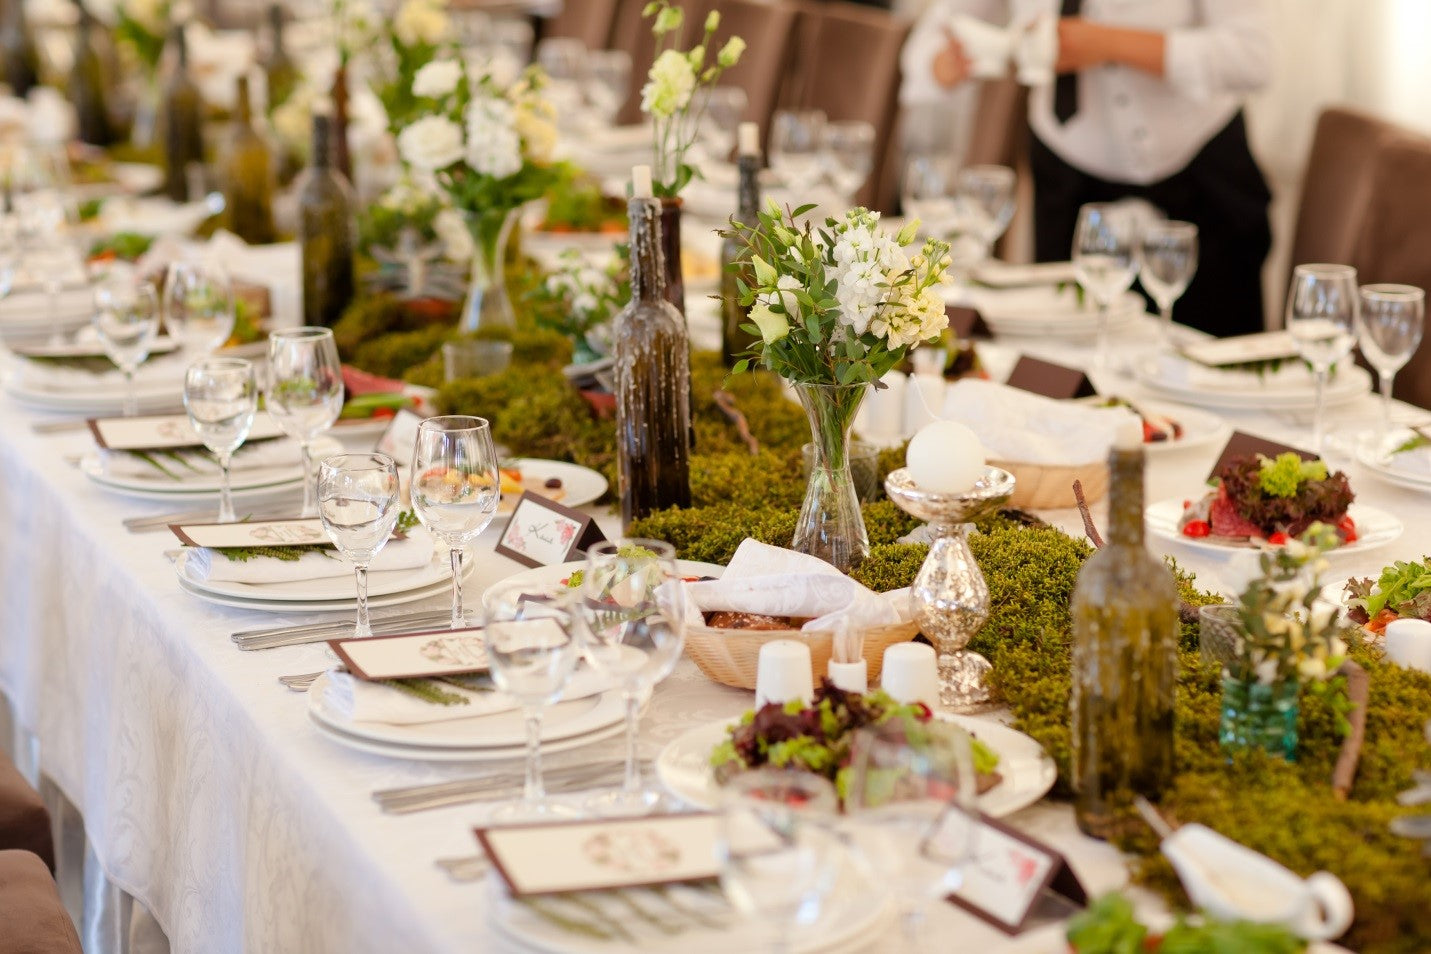 outdoor theme banquet table with white tablecloth